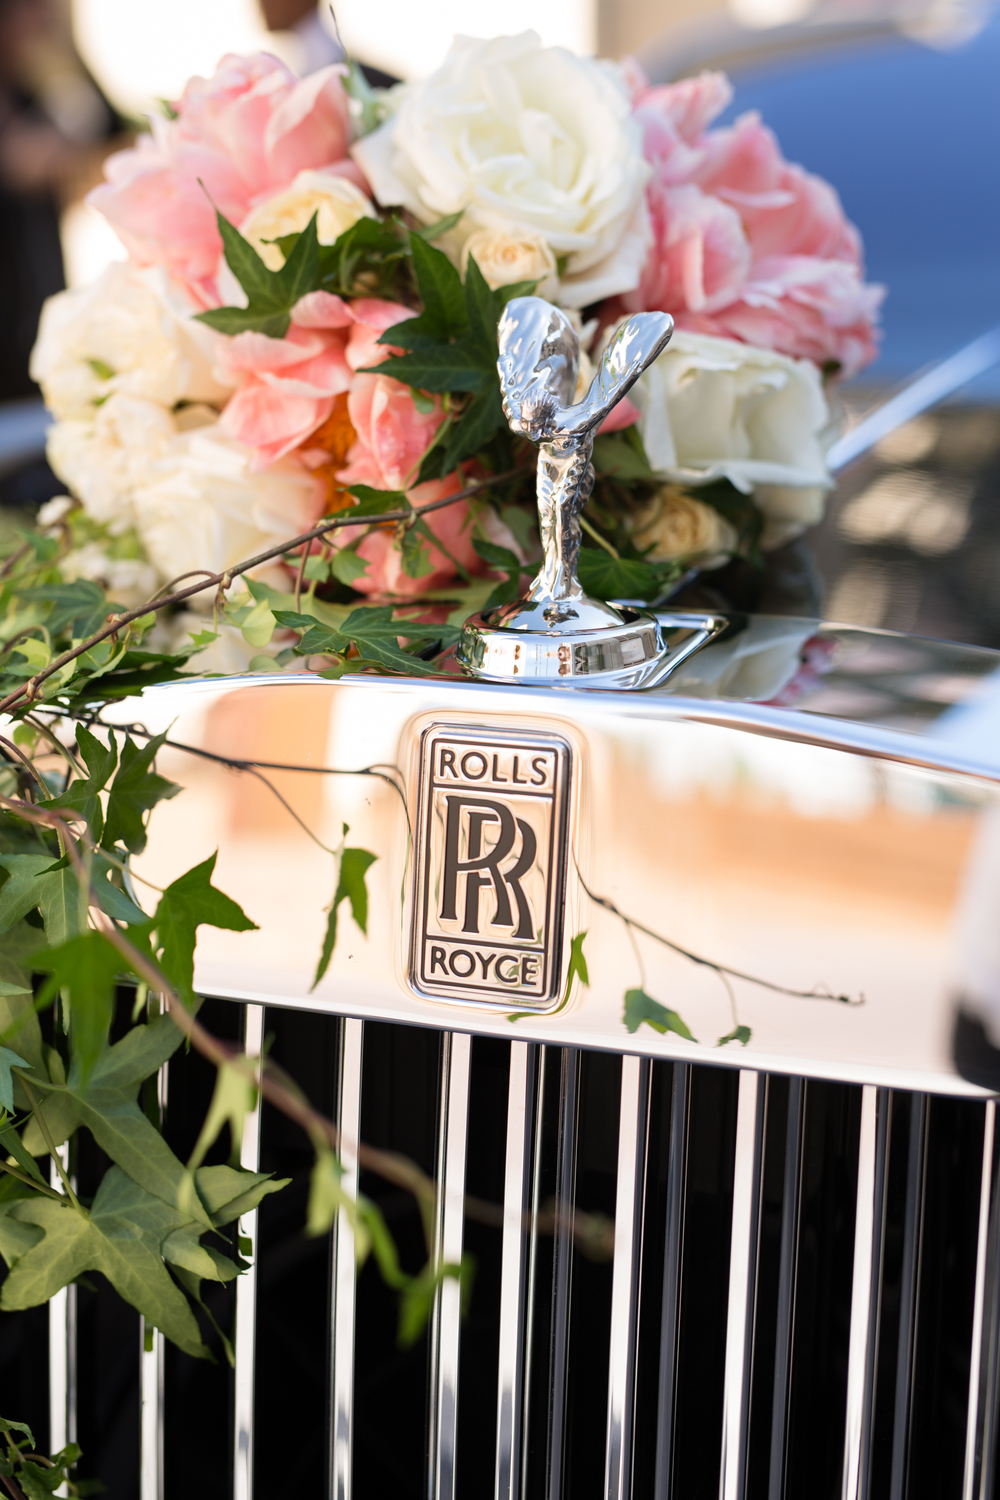 The rolls royce is the best car to leave a wedding in!  Las Vegas Wedding Planner Andrea Eppolito  |  Wedding at The Venetian Las Vegas  |  Florals and Decor by Naakiti Floral  |  Photos by Meg Ruth